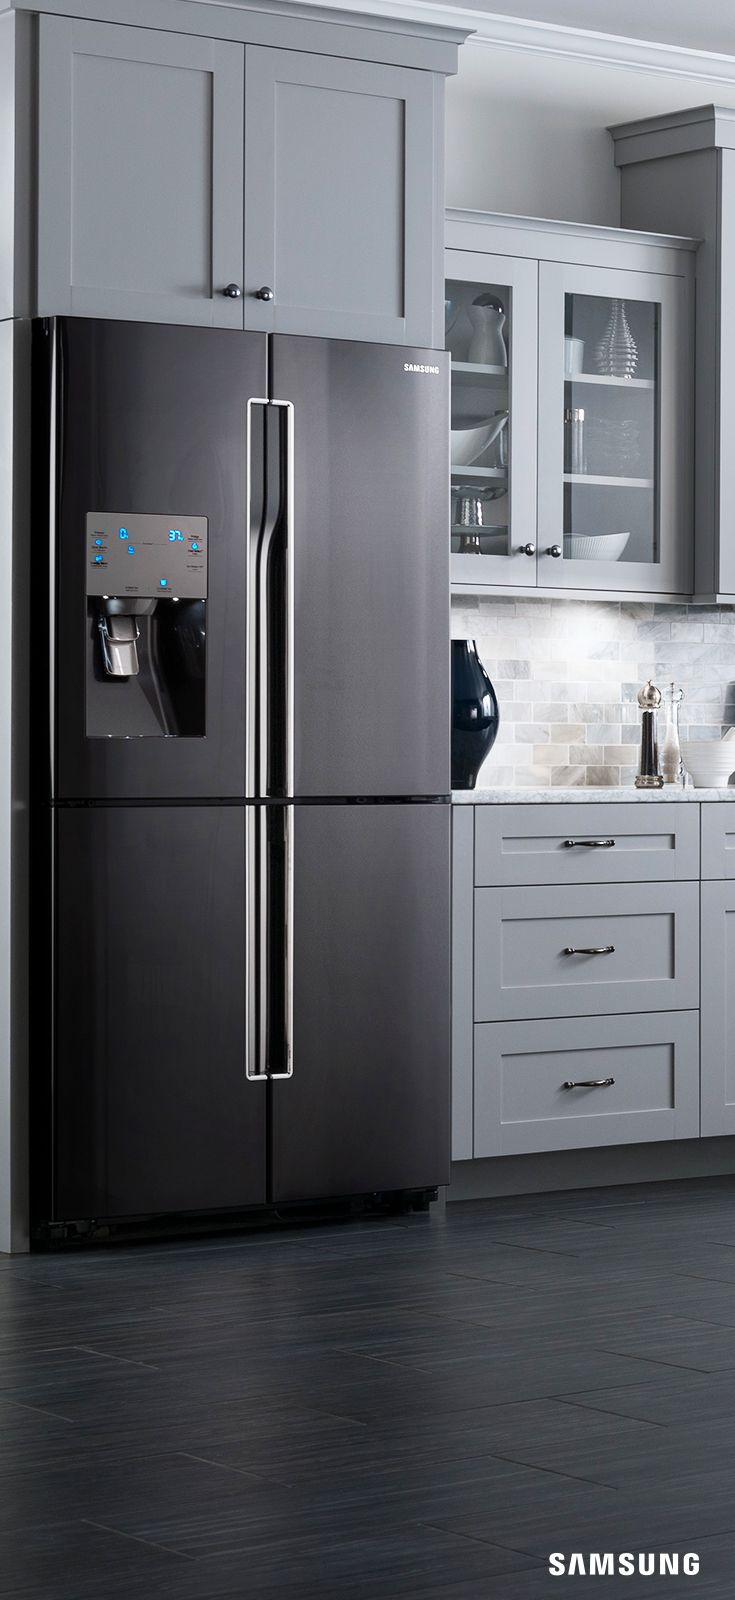 Uncategorized Major Kitchen Appliances 46 best images about samsung kitchen design on pinterest the next thing in inspiration is black stainless steel 4 door flex